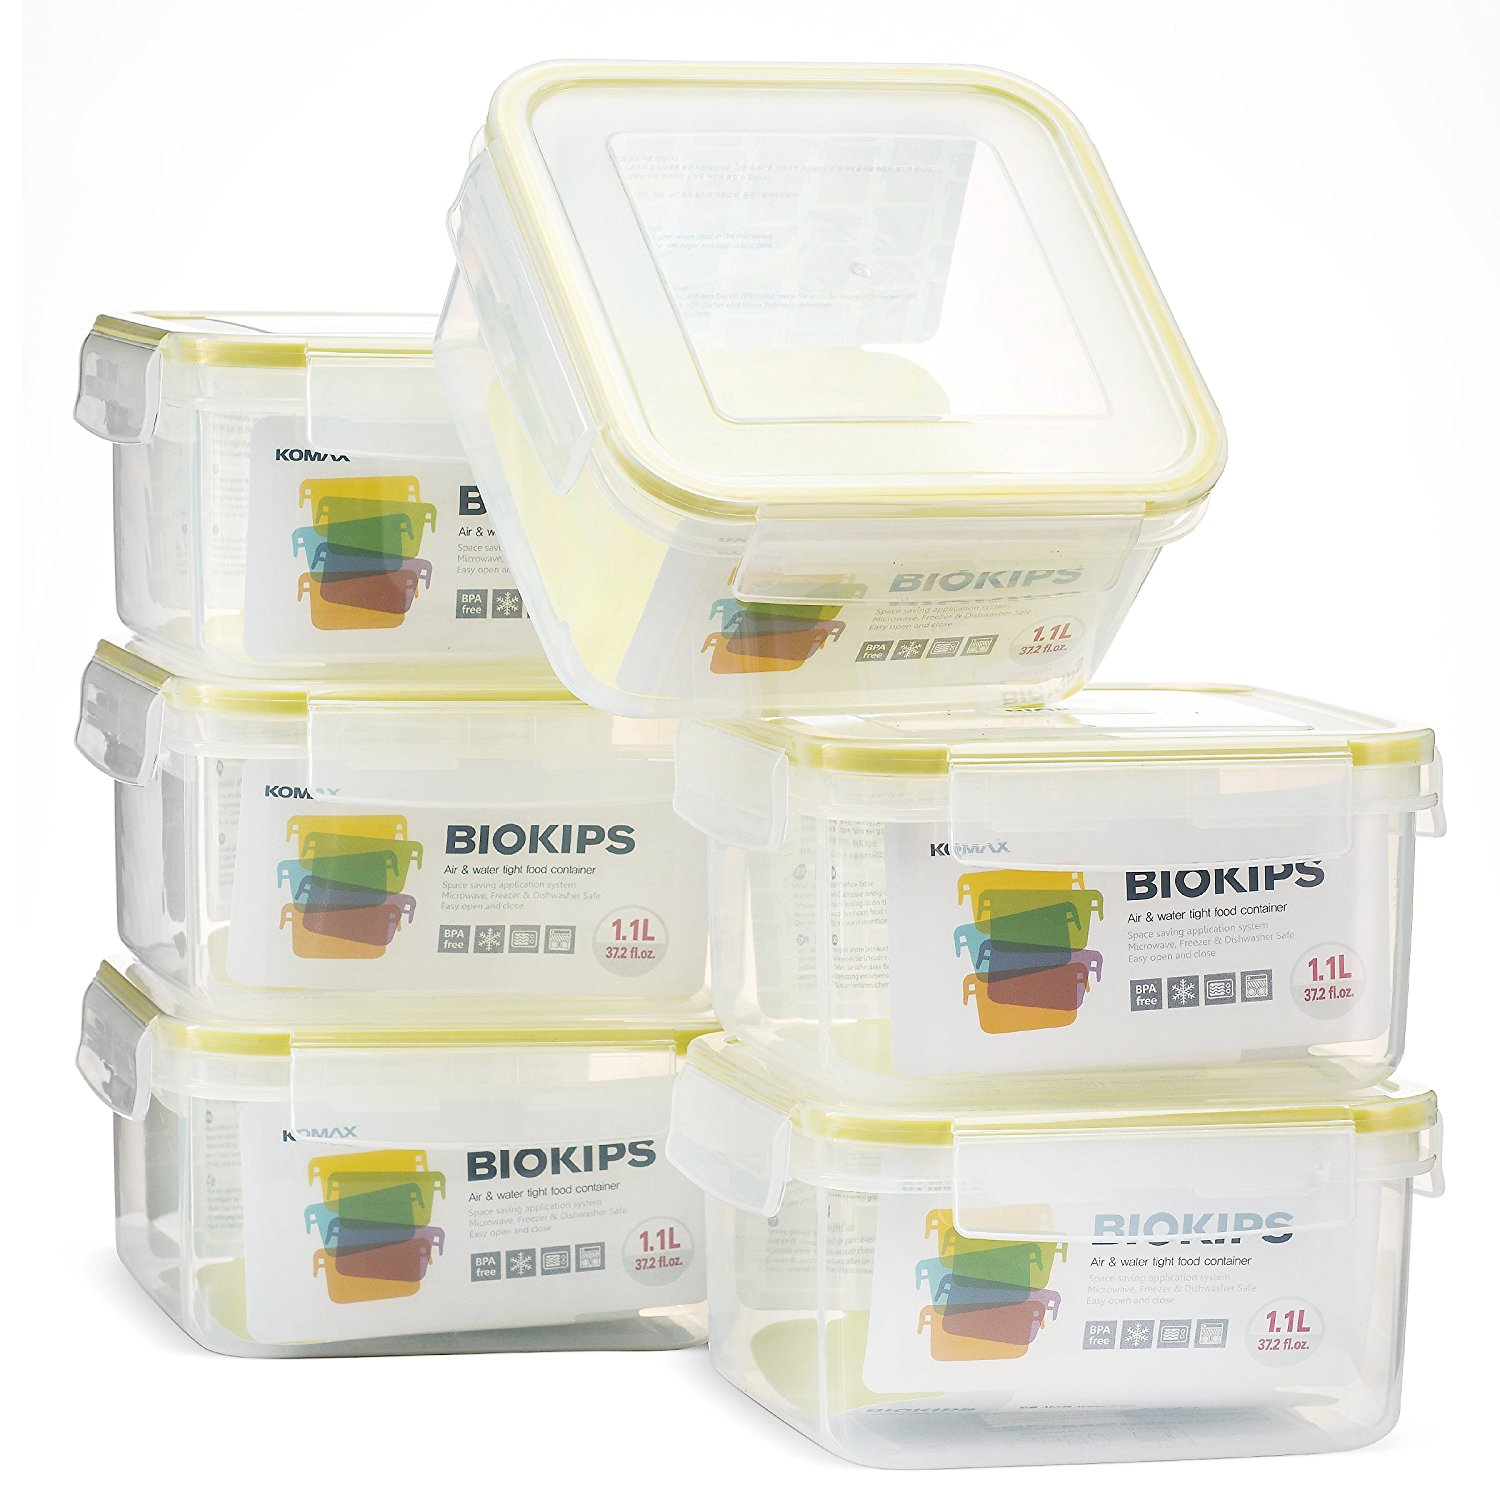 Komax Biokips Square Food Storage Container 37oz set of 6